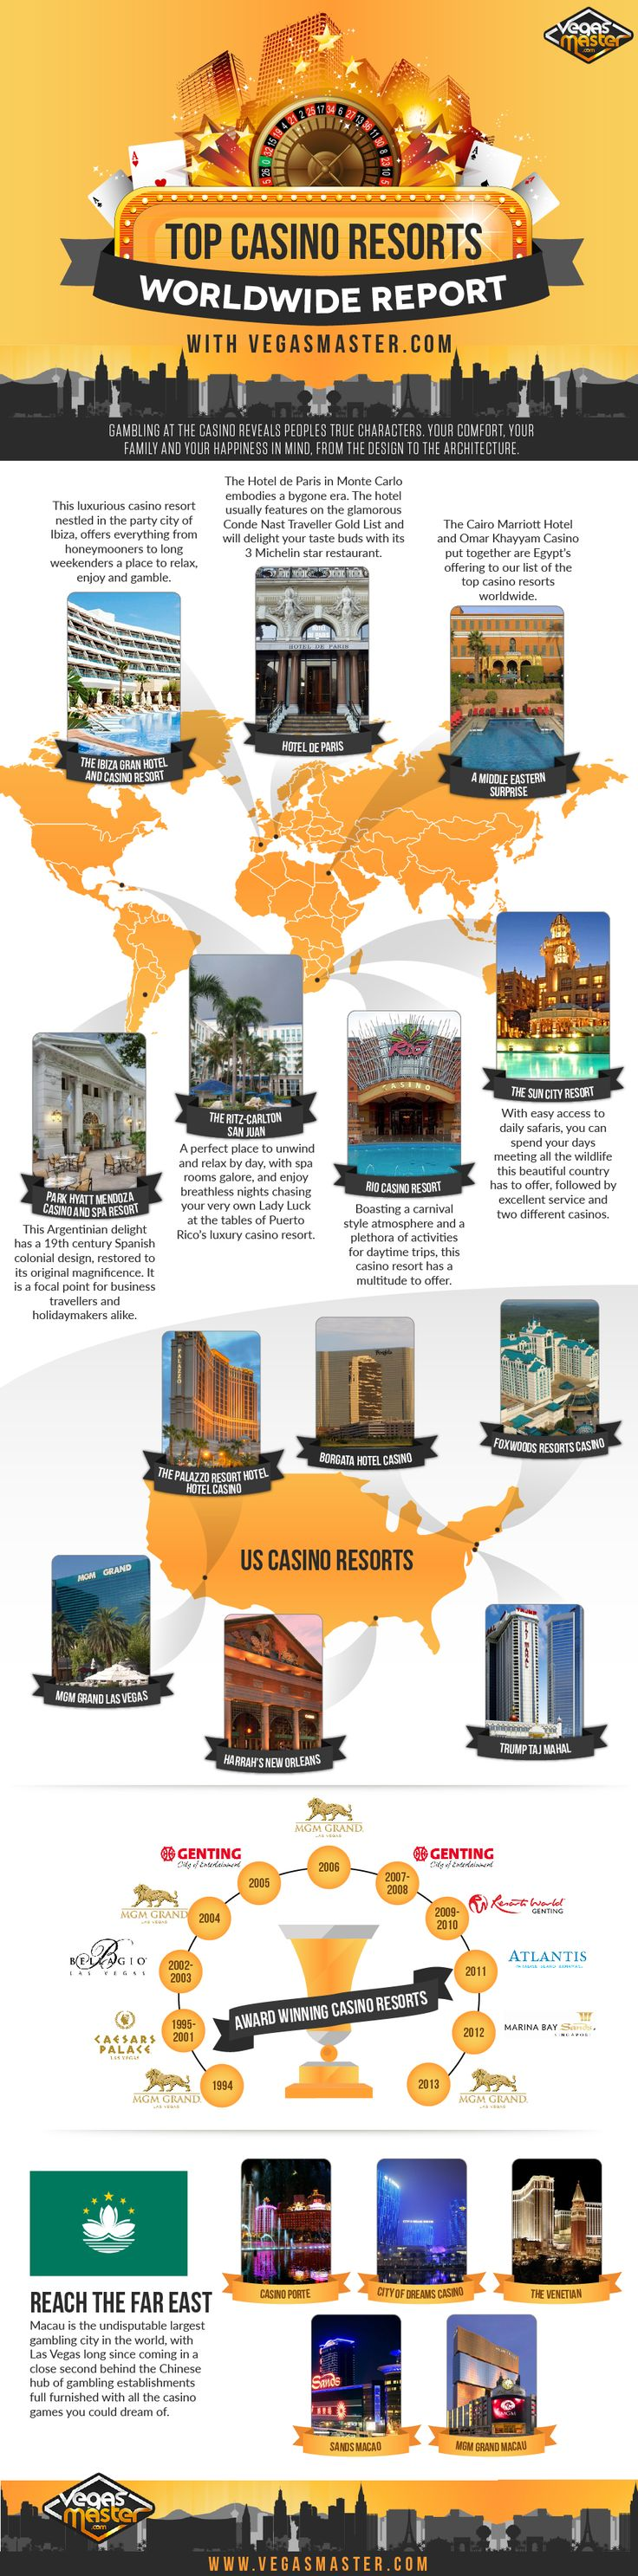 Top Casino Resorts WorldWide The color scheme in this infographic uses gold, black and some red and green. Because this infographic is all about casinos the gold makes users feel luxurious and excited about the opportunity to win money. While the red and green and black are colors common in gambling that will let the viewer correlate the gold luxurious with the gambling colors.